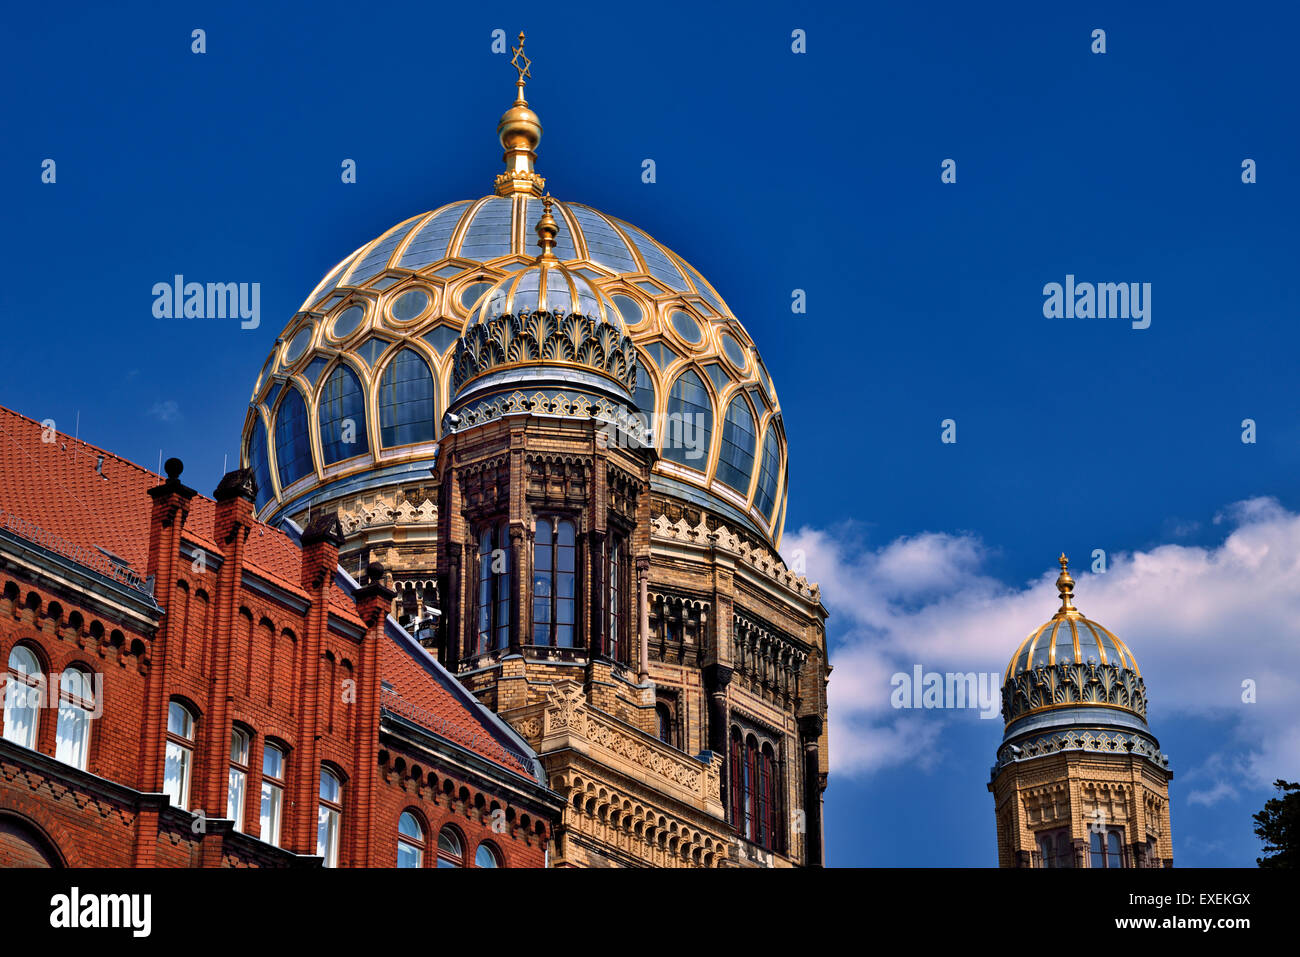 Germany, Berlin: Architectonic details and golden cupola of the New Synagogue - Stock Image